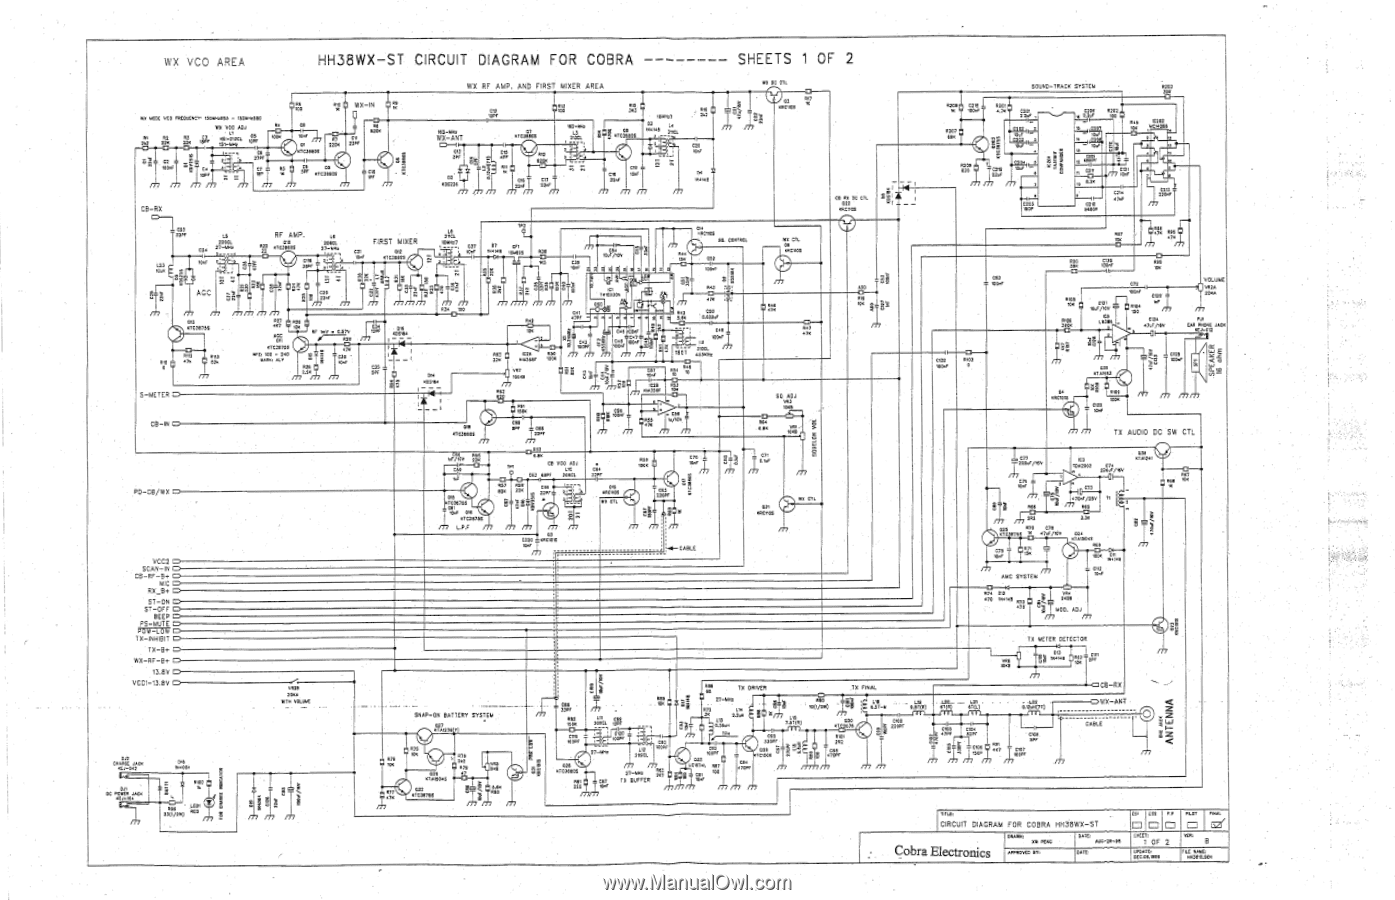 Cobra 75 Wx St Wiring Diagram - 74 Vw Engine Diagram for Wiring Diagram  Schematics | Cobra 75 Wx St Wiring Diagram |  | Wiring Diagram Schematics